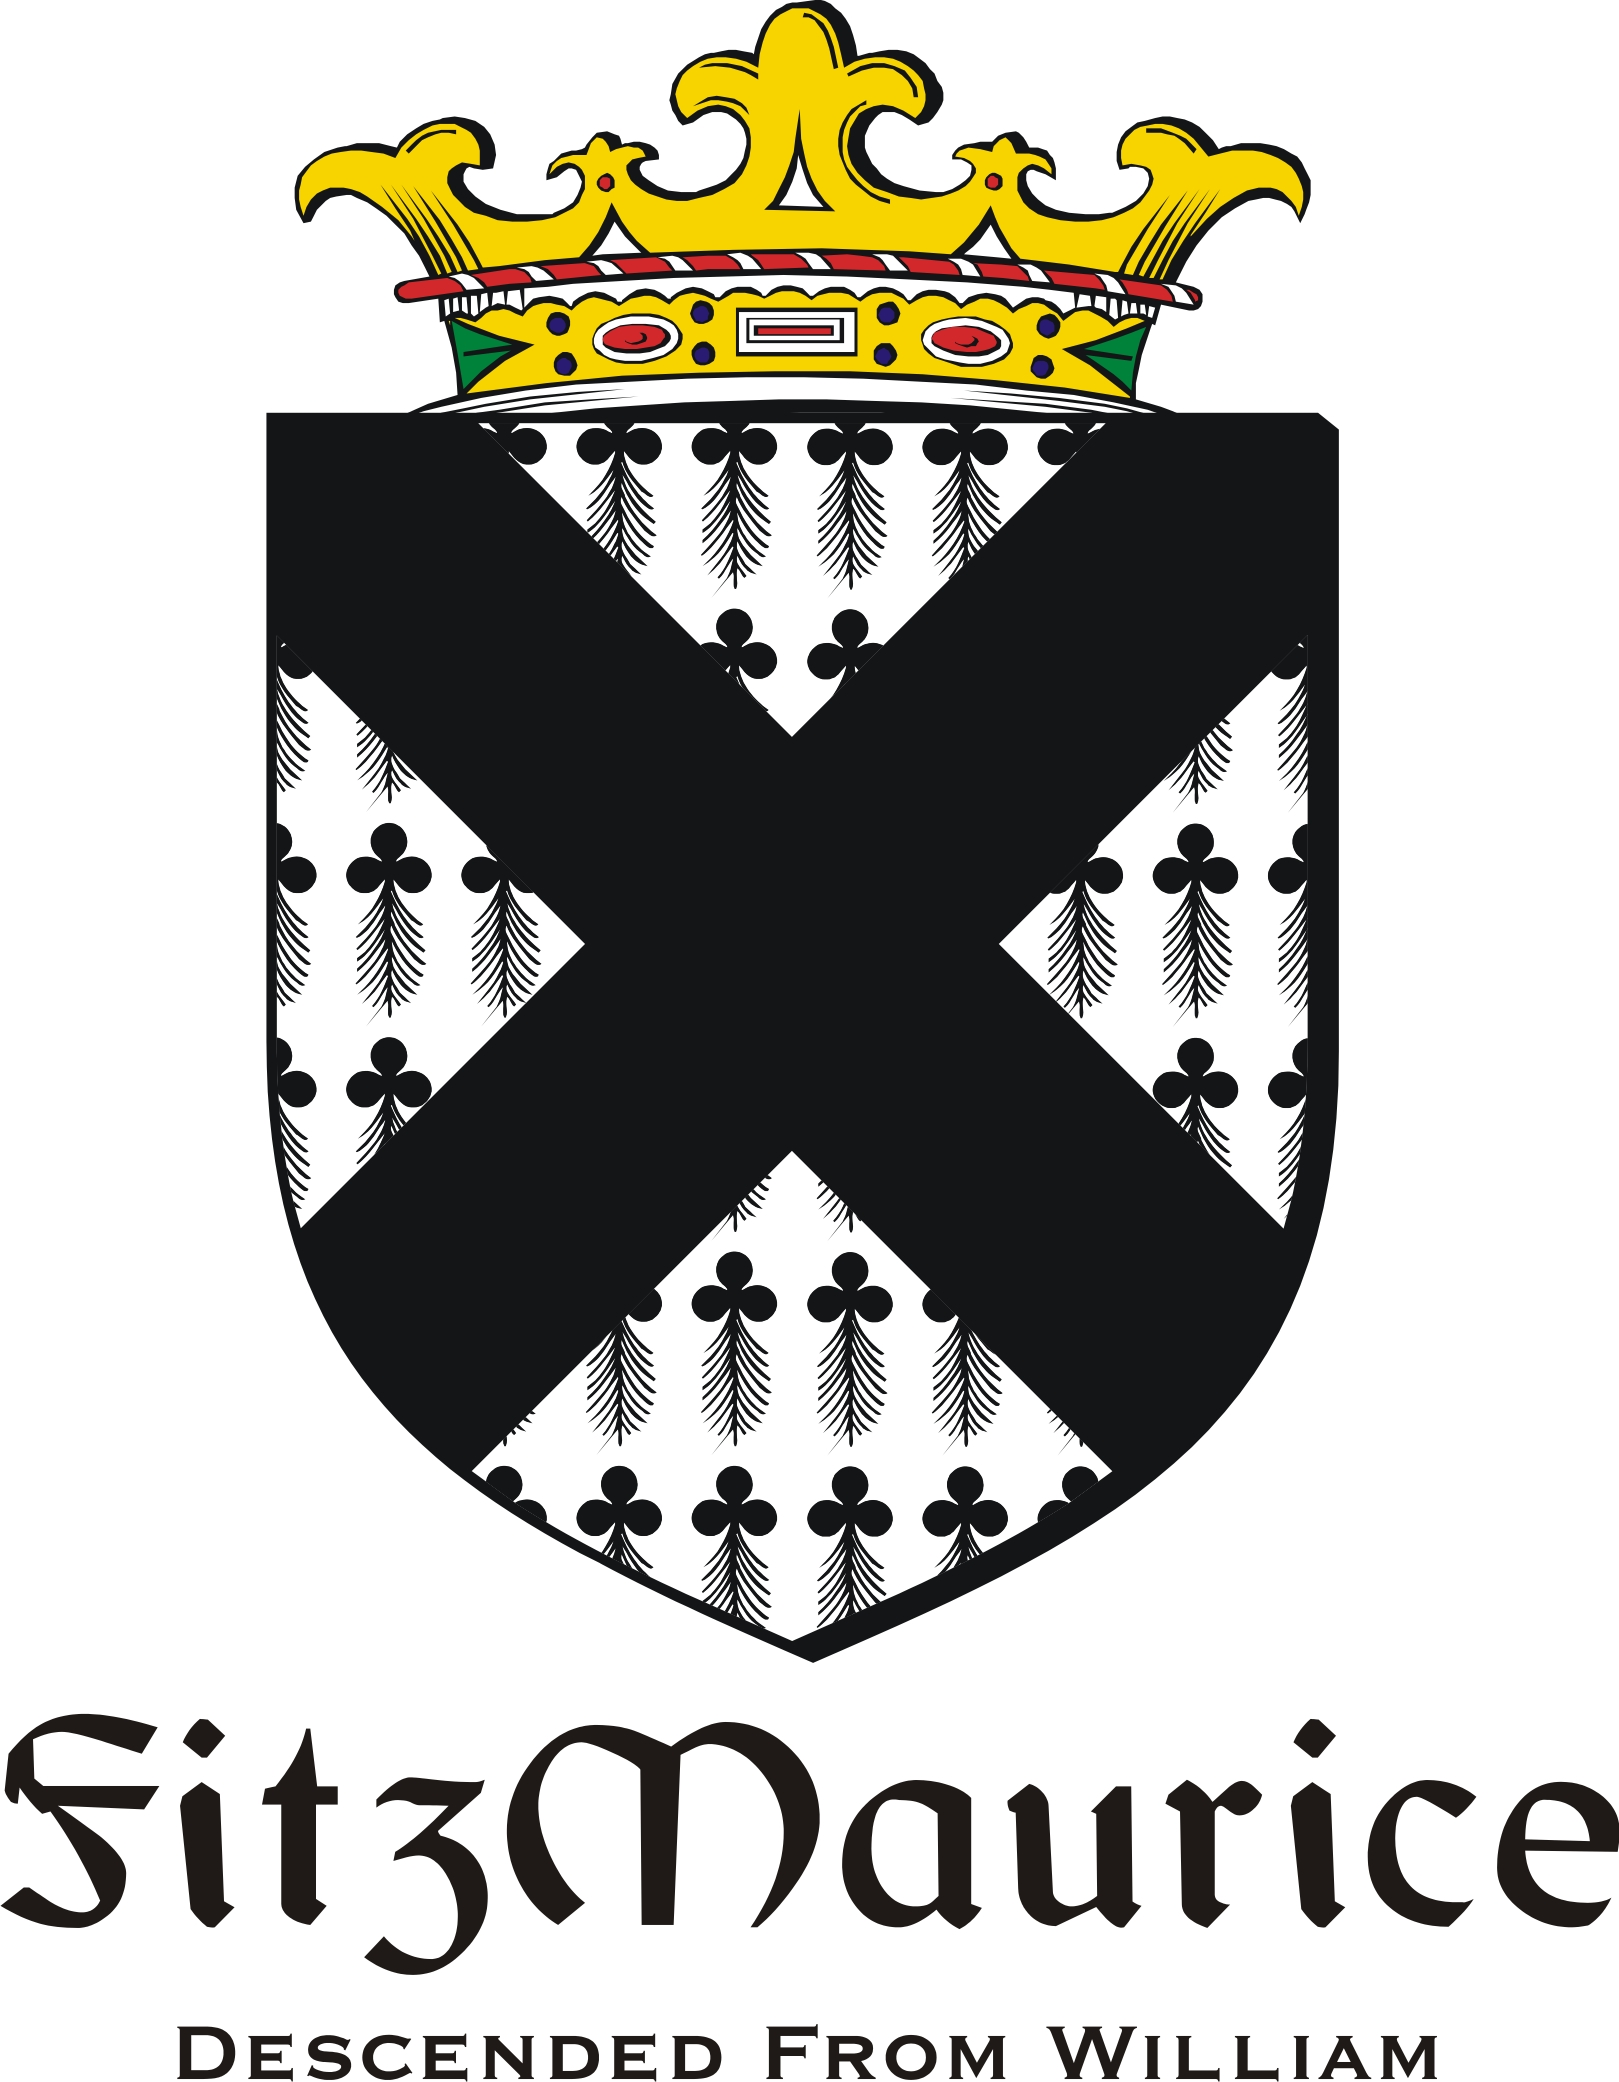 Family crescent symbols images symbol and sign ideas download fitzmaurice family crest family crests fitzmaurice kerry fitzmaurice family crest irish coat of arms image buycottarizona Images